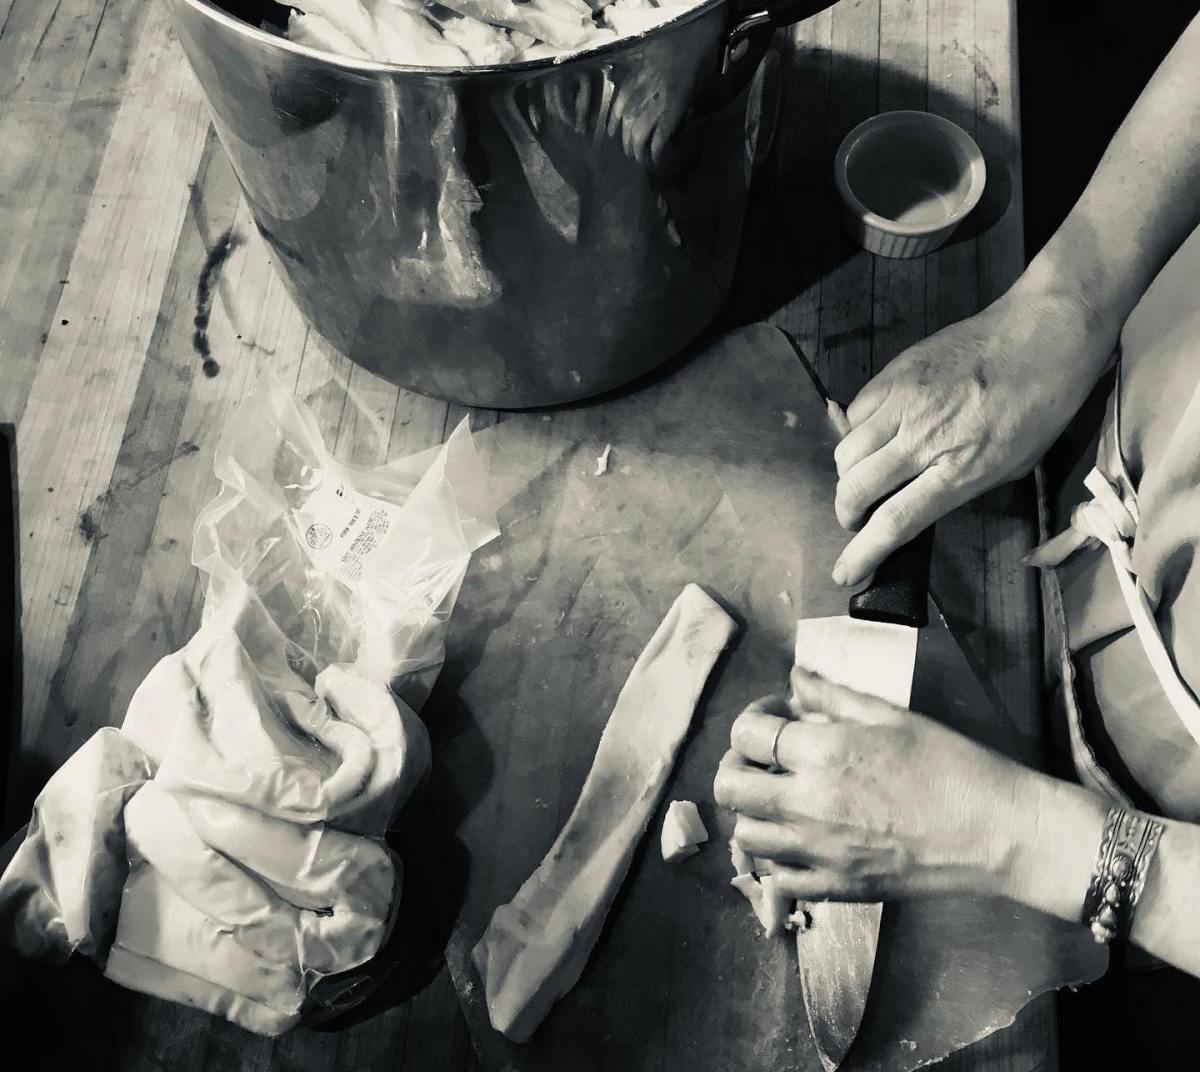 Black and white photo of Shannon Hayes' hands chopping and rendering lard.